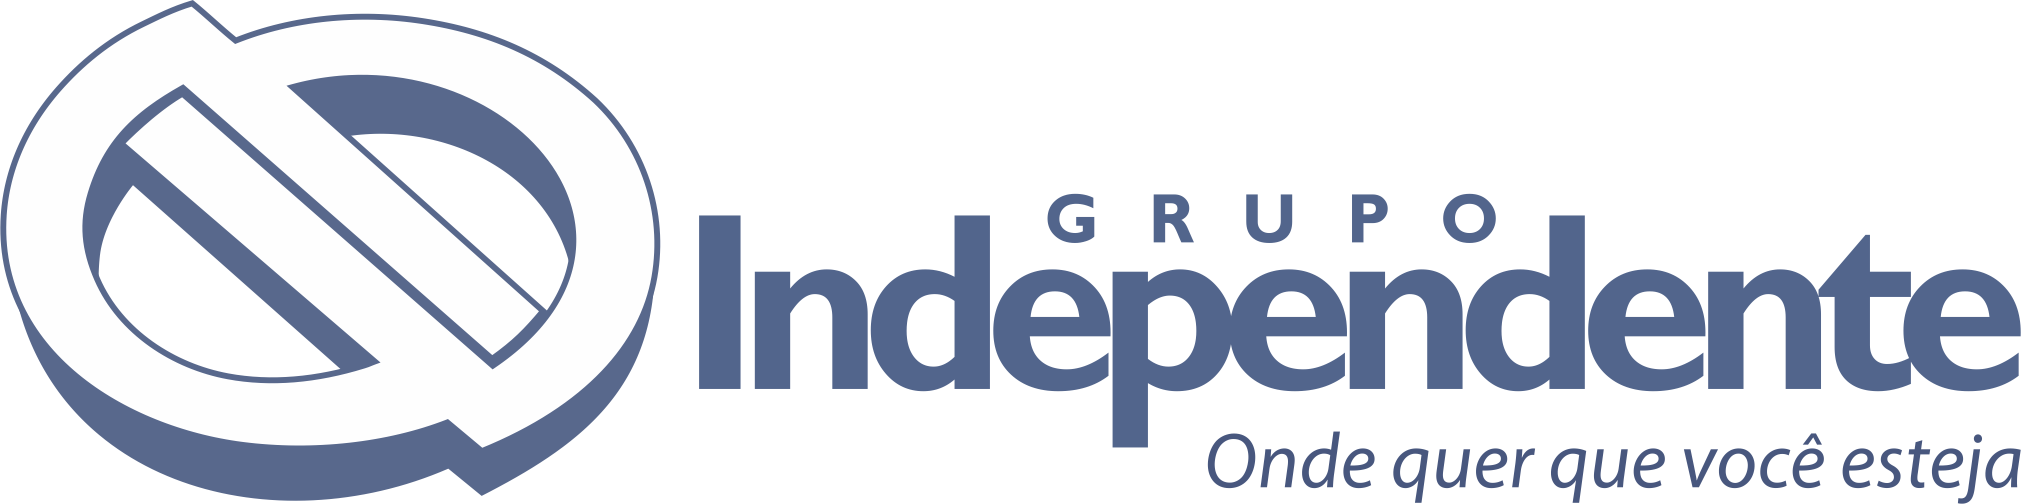 Grupo Independente